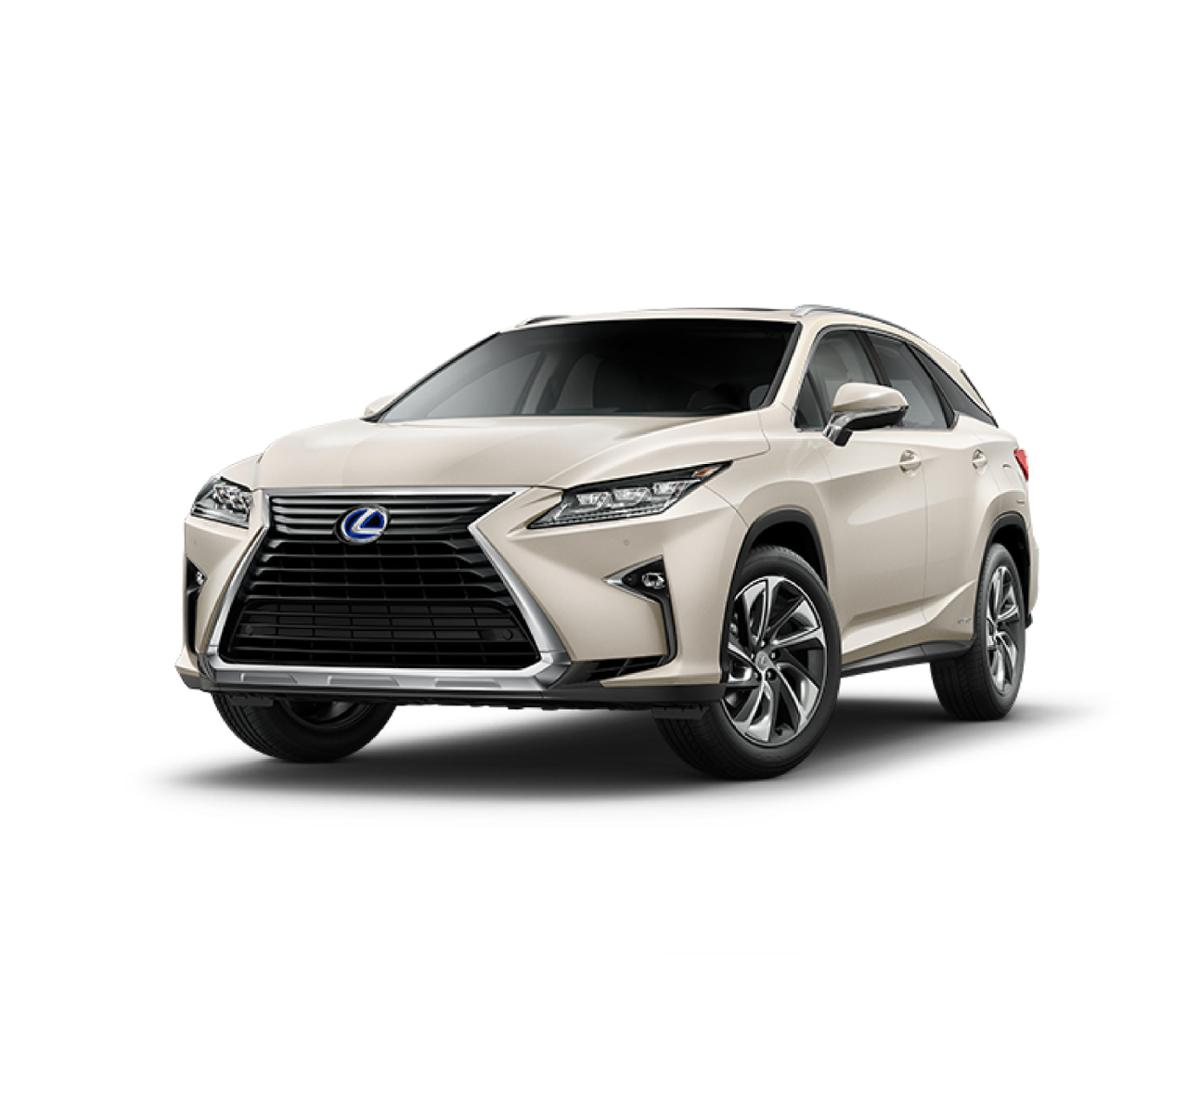 2019 Lexus RX 450hL Vehicle Photo in Las Vegas, NV 89146